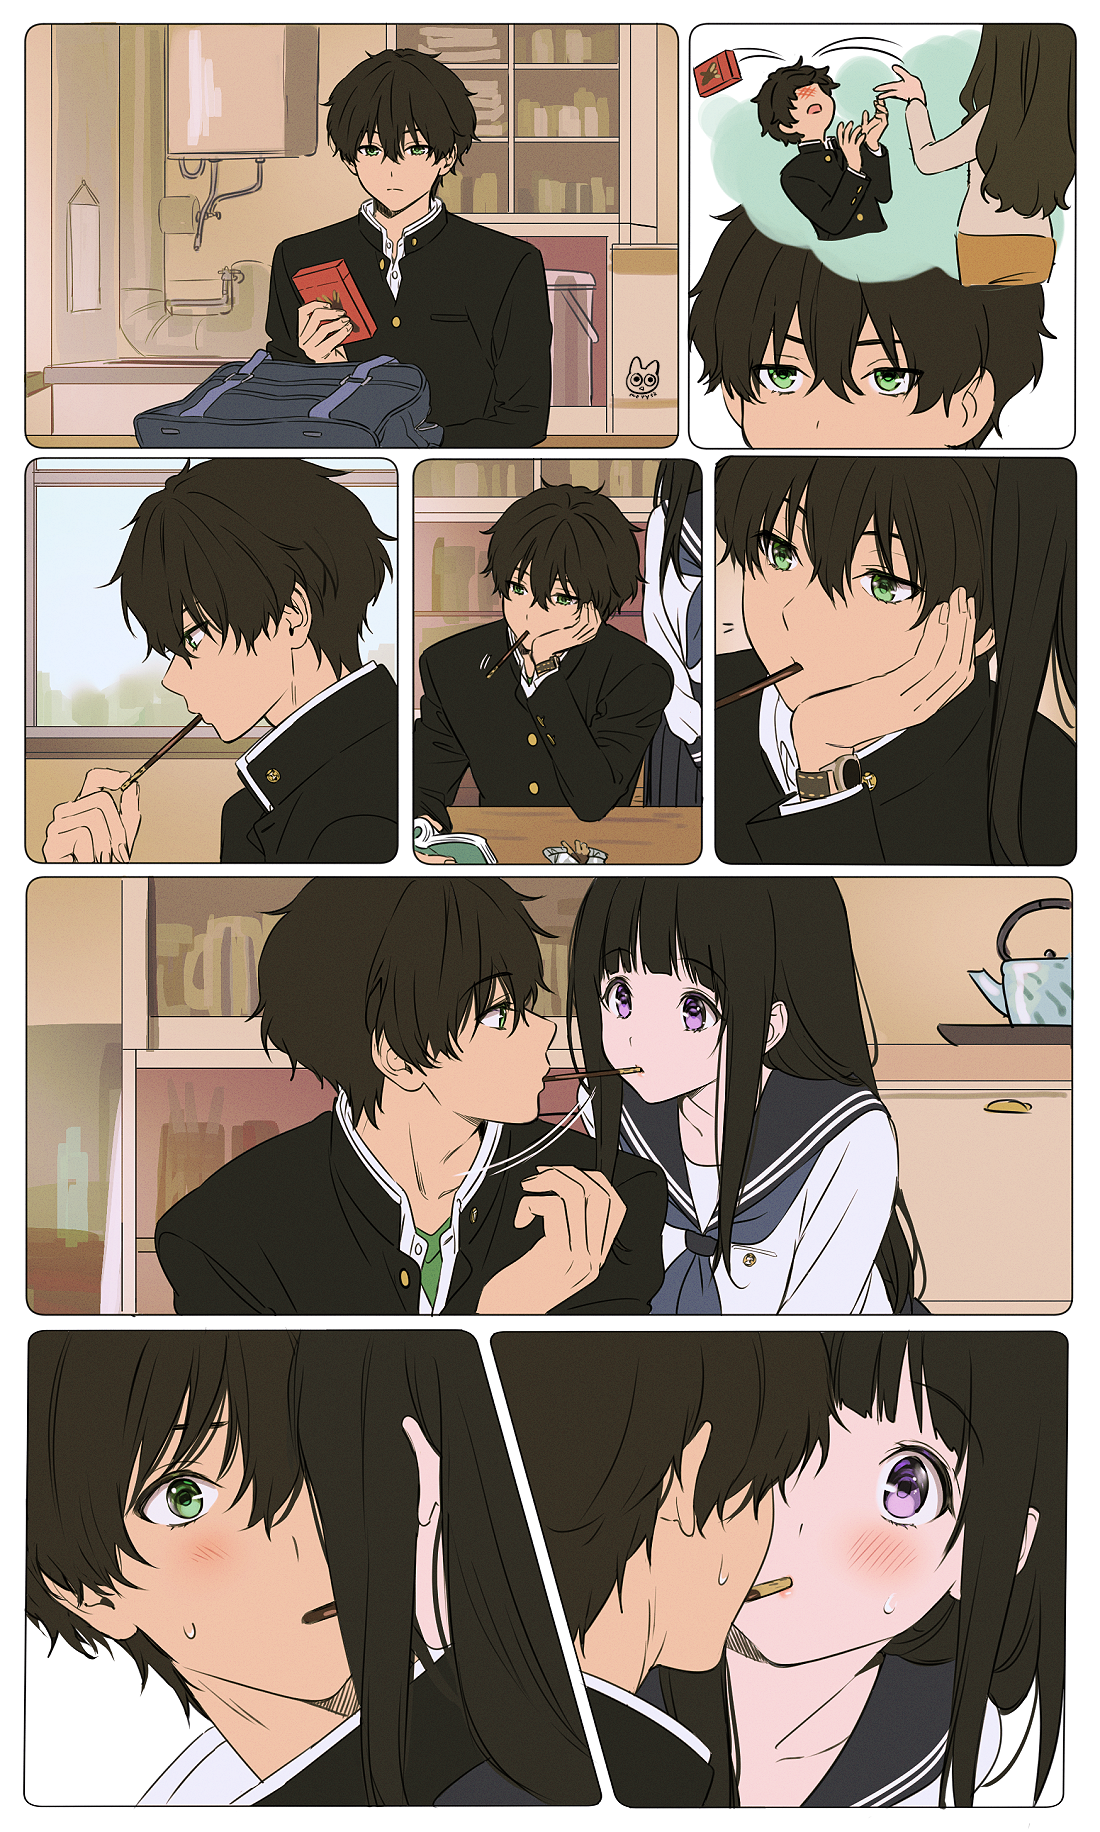 Accidental Pocky Game by mery [Hyouka]